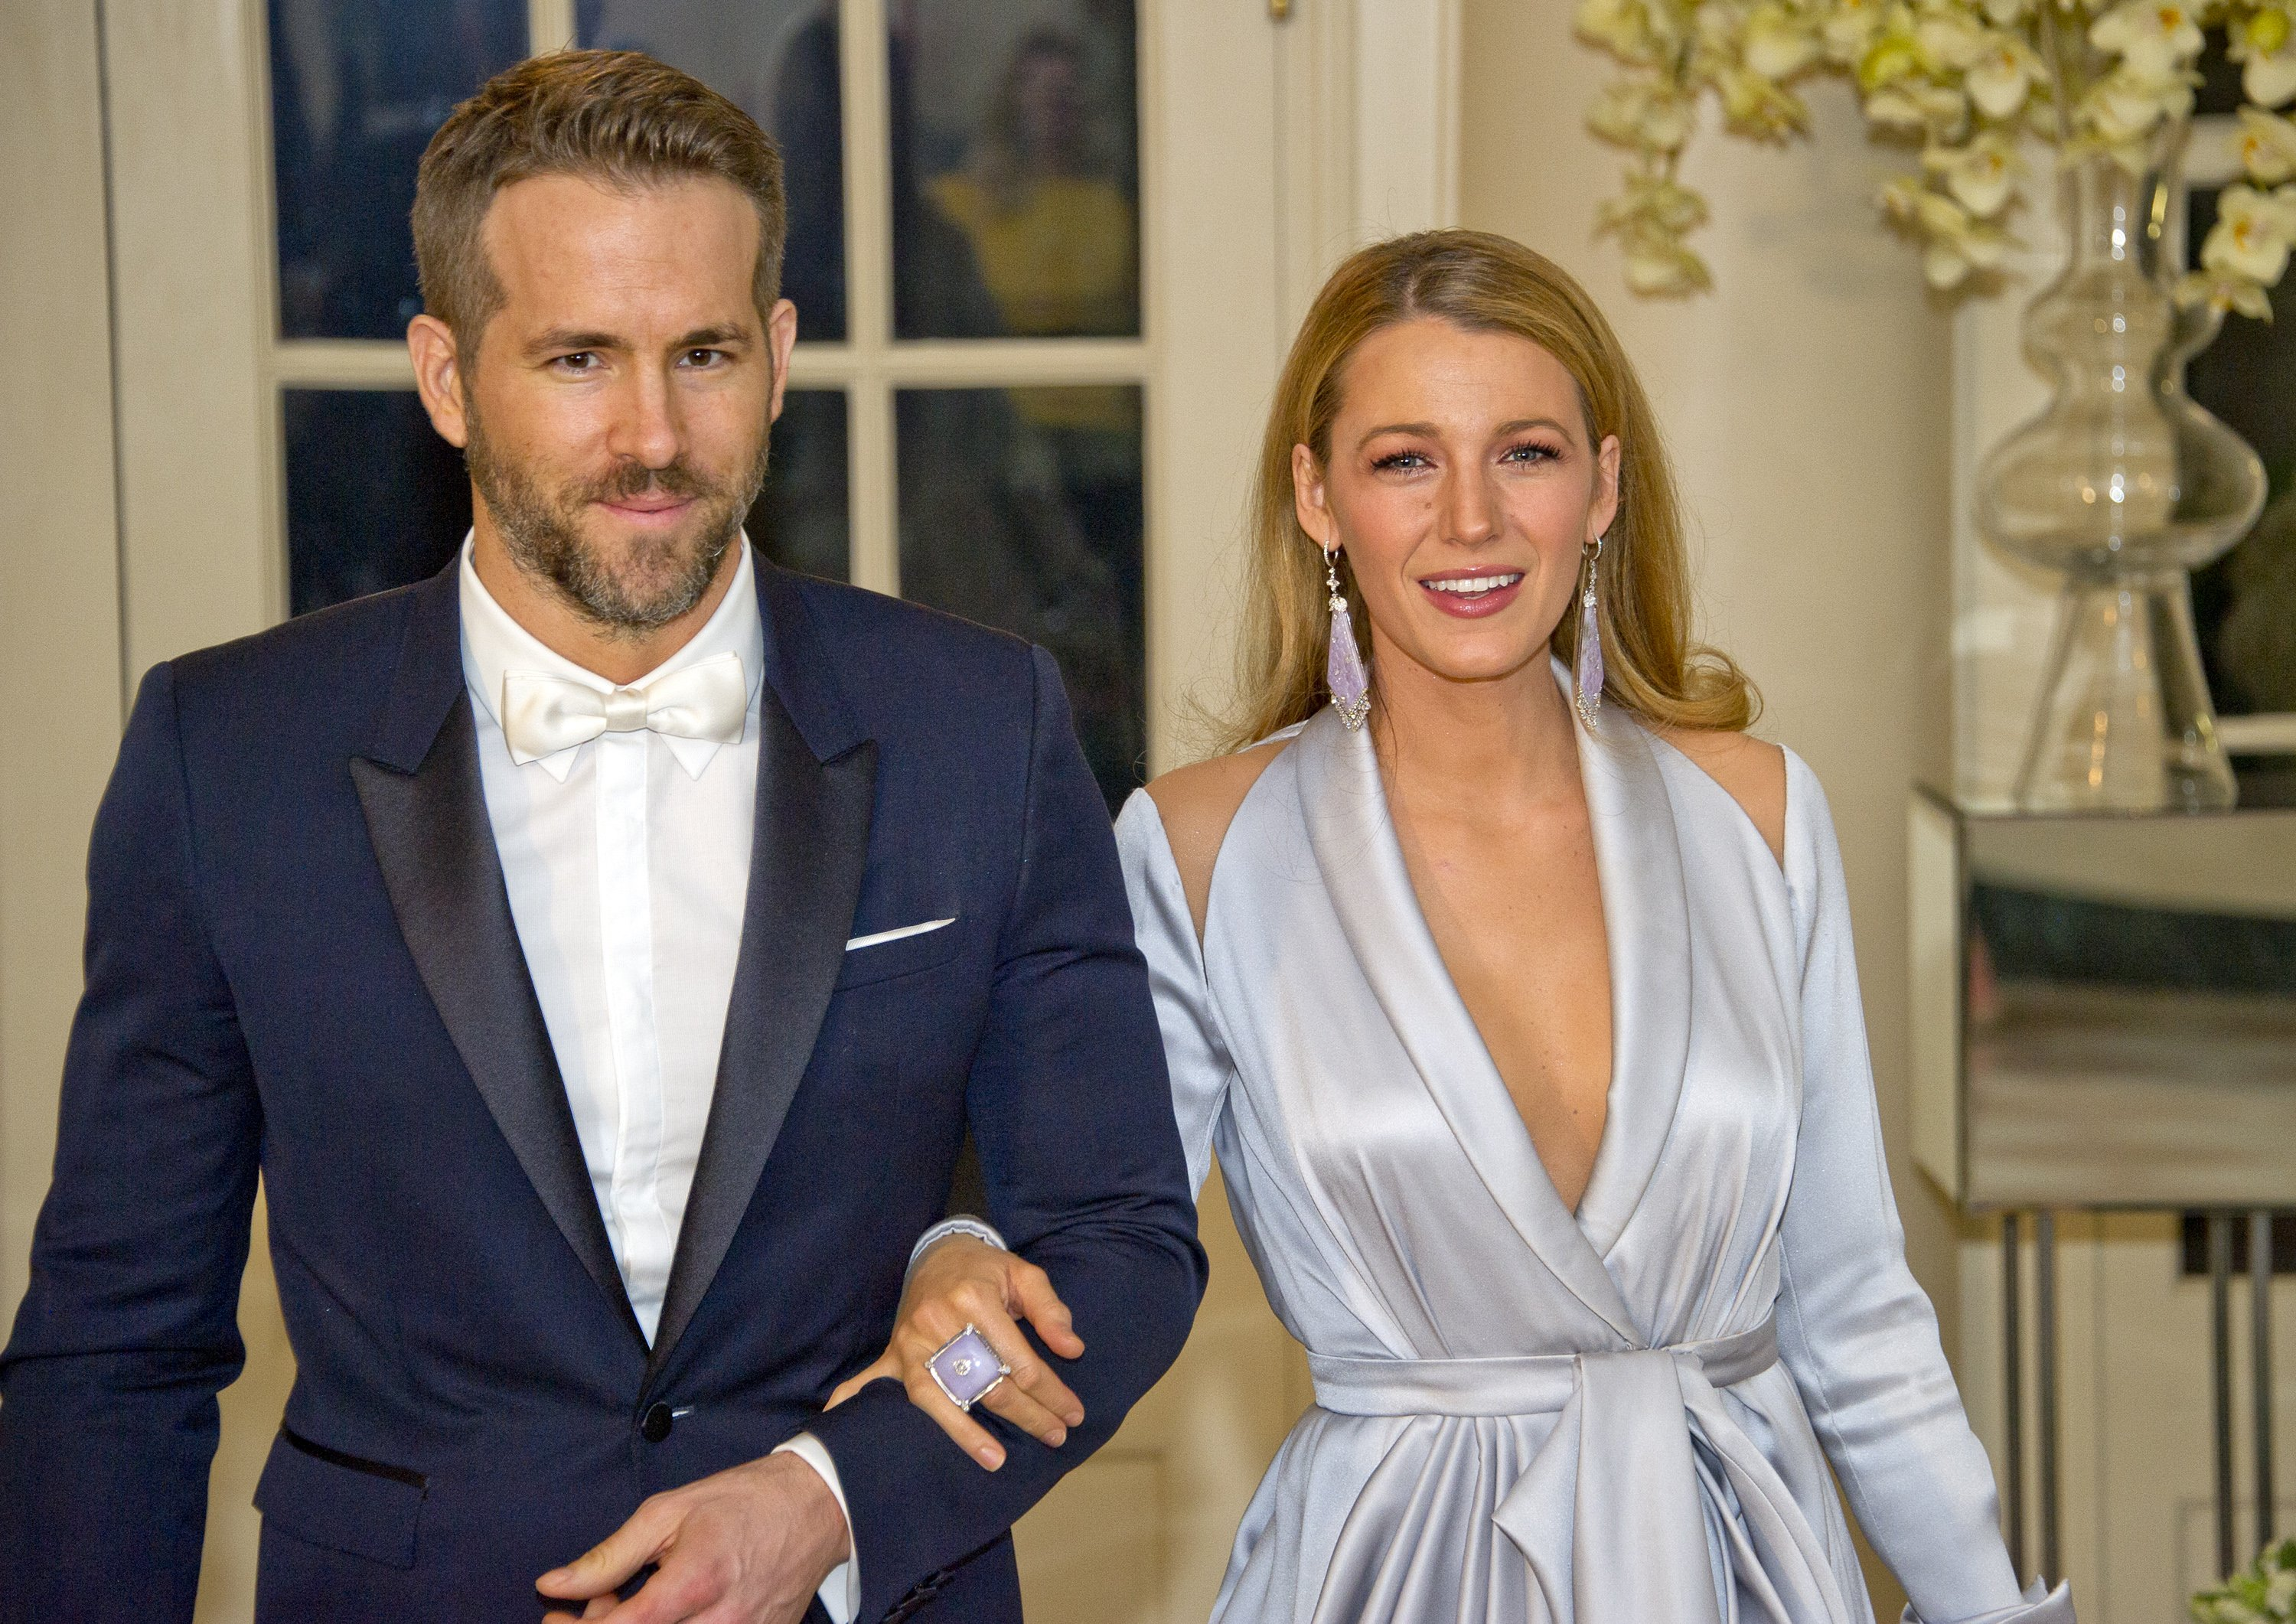 Ryan Reynolds and Blake Lively arrive for the State Dinner at the White House on March 10, 2016.   Photo: Getty Images